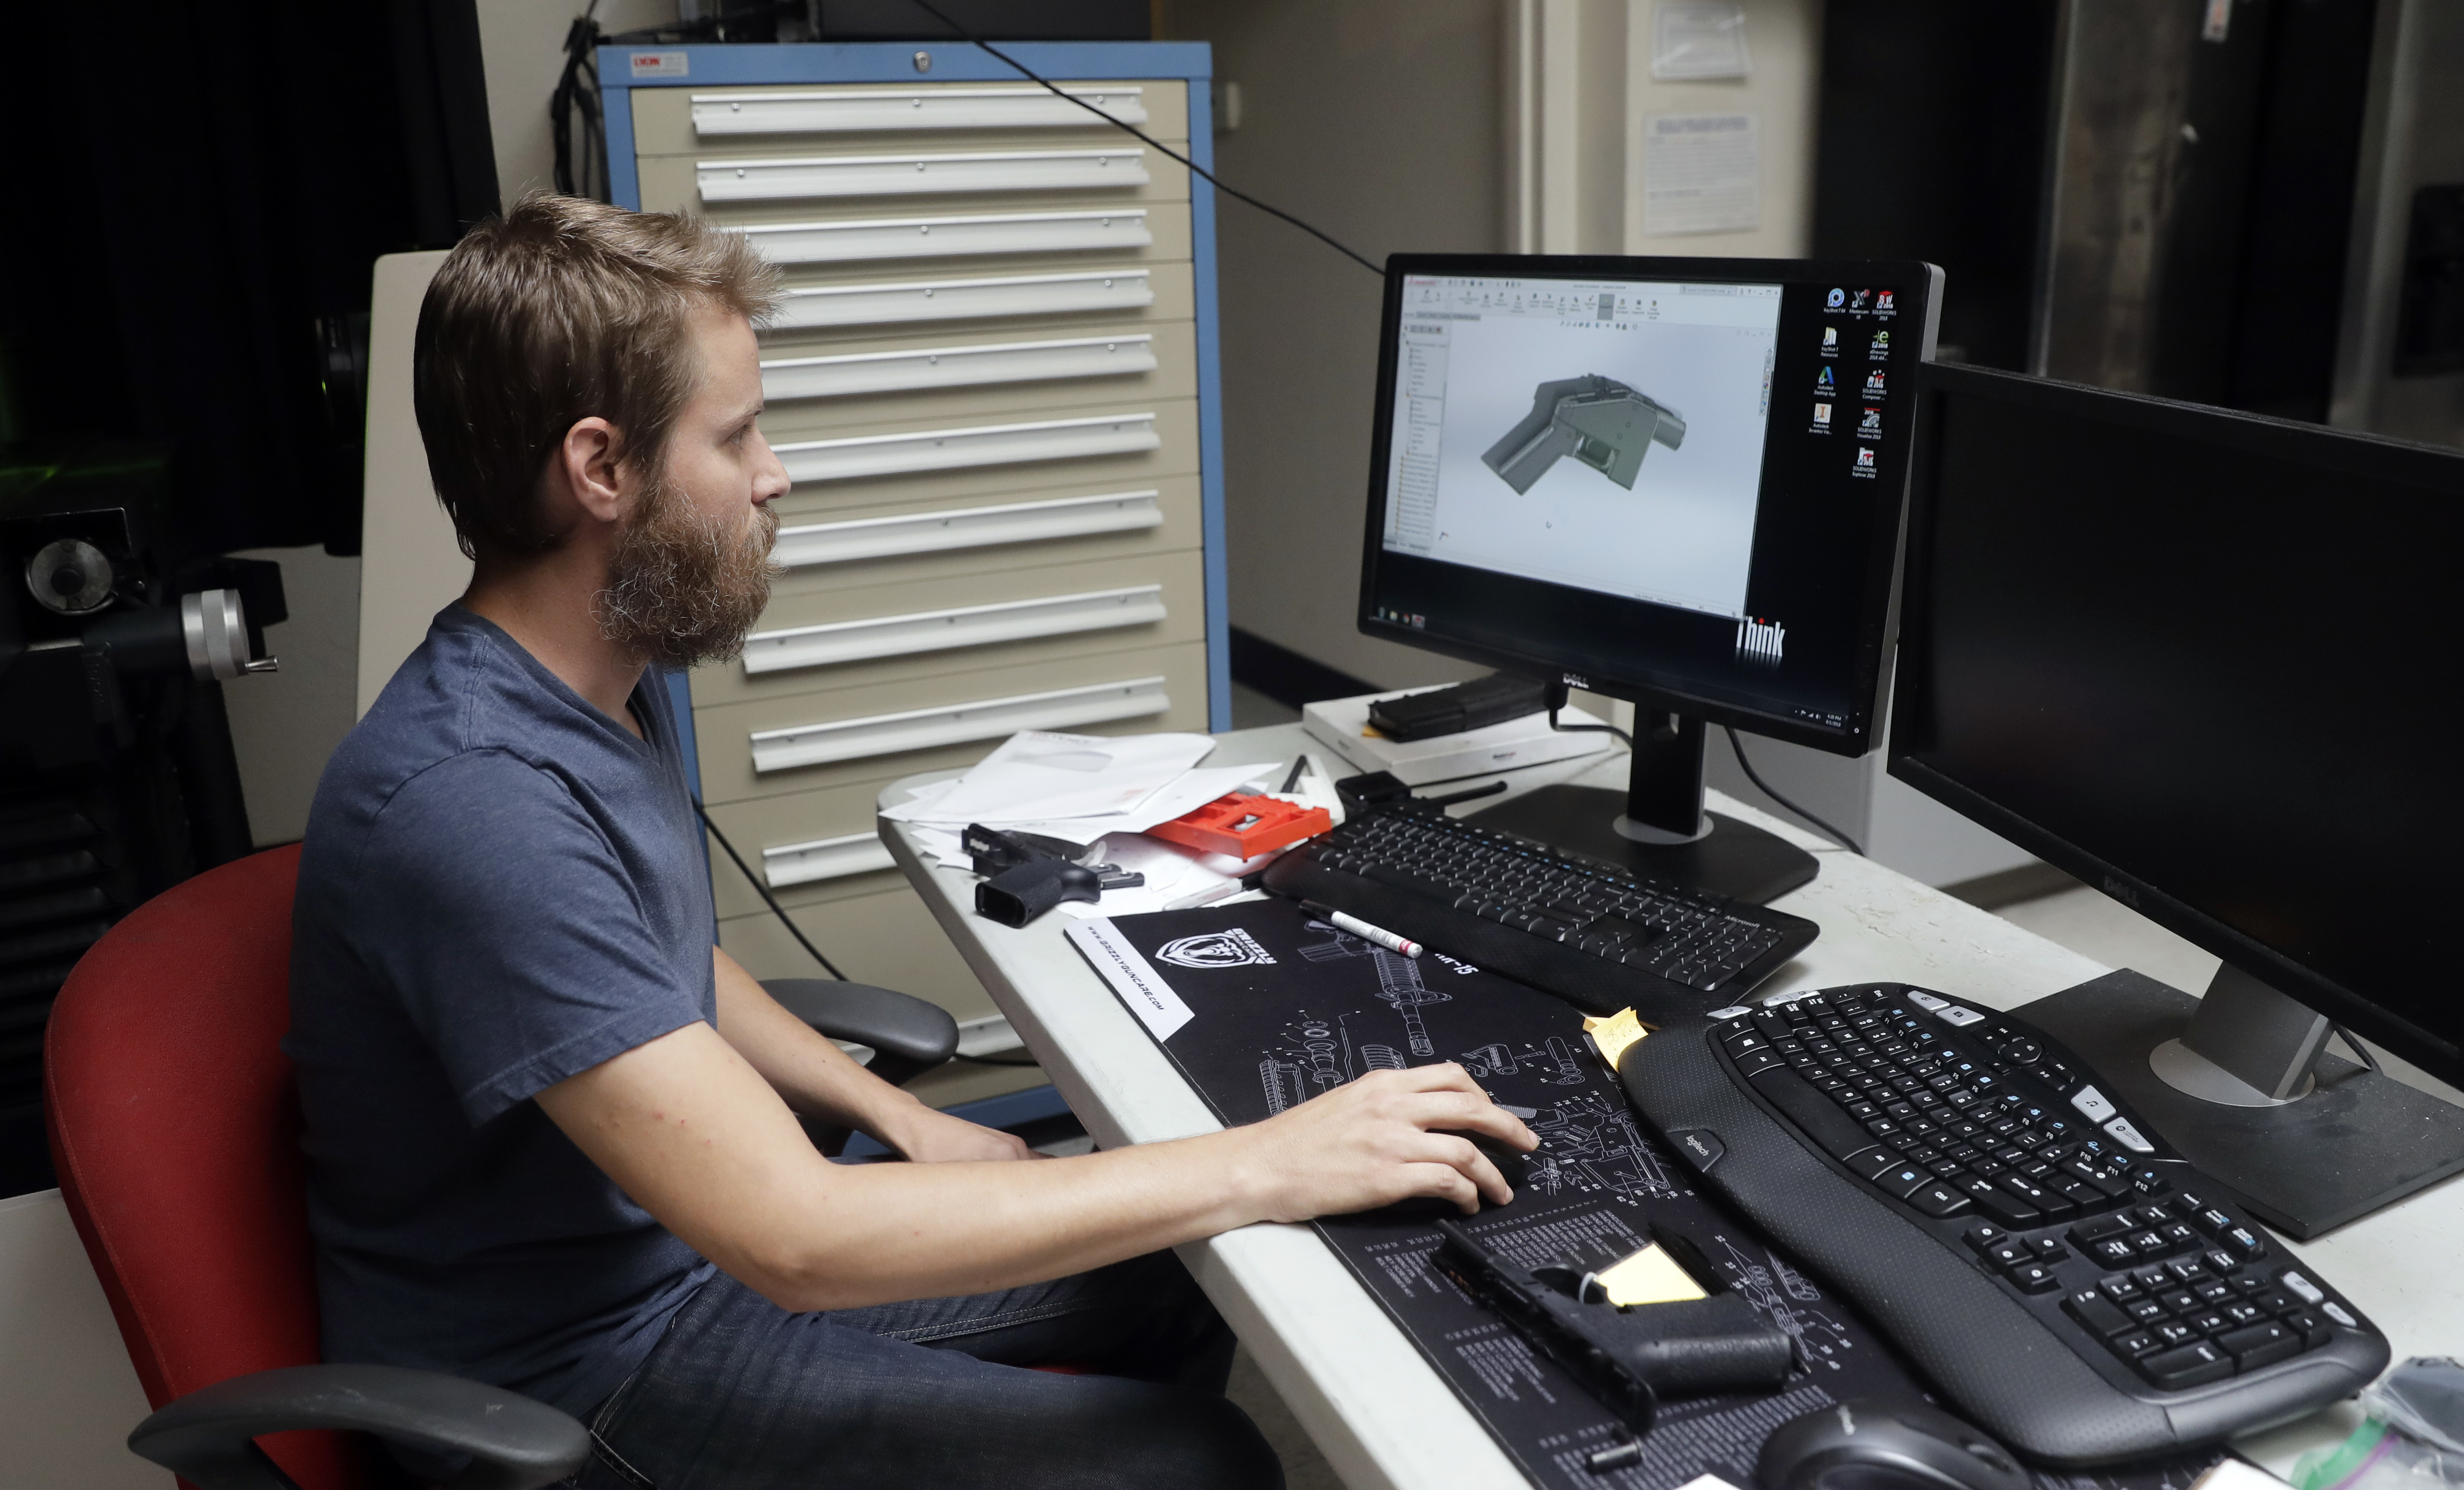 Ben Chalker shows the CAD software of a 3D-printable gun called the Liberator in Austin, Texas, Aug. 1, 2018.